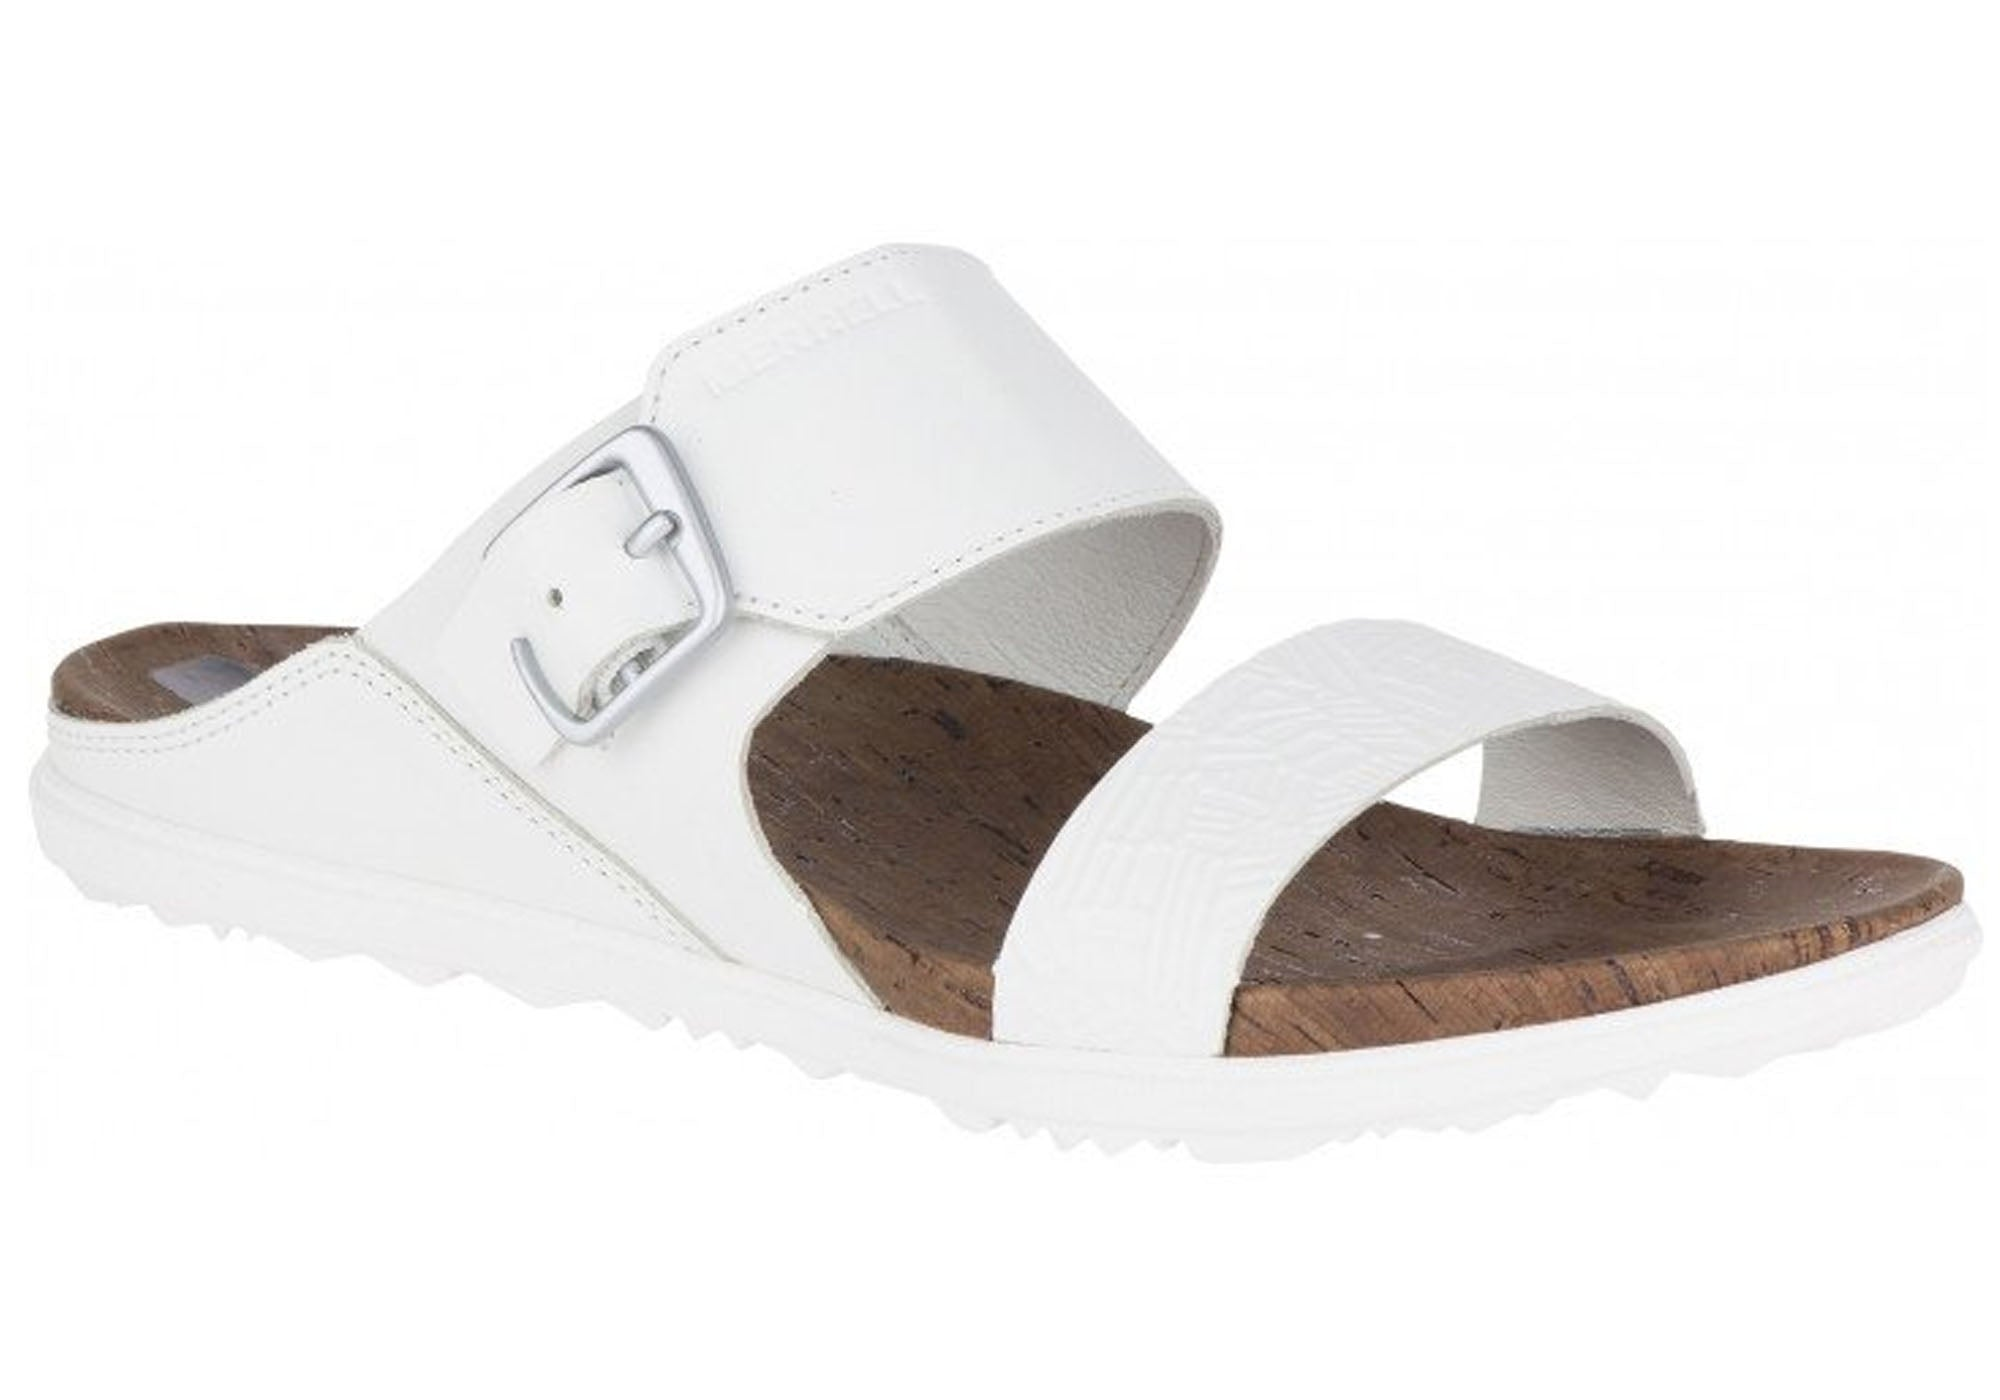 19fbe1ff0f9f Home Merrell Womens Leather Around Town Buckle Slide Comfort Sandals. White  · Tan · Black · Red · Brown ...